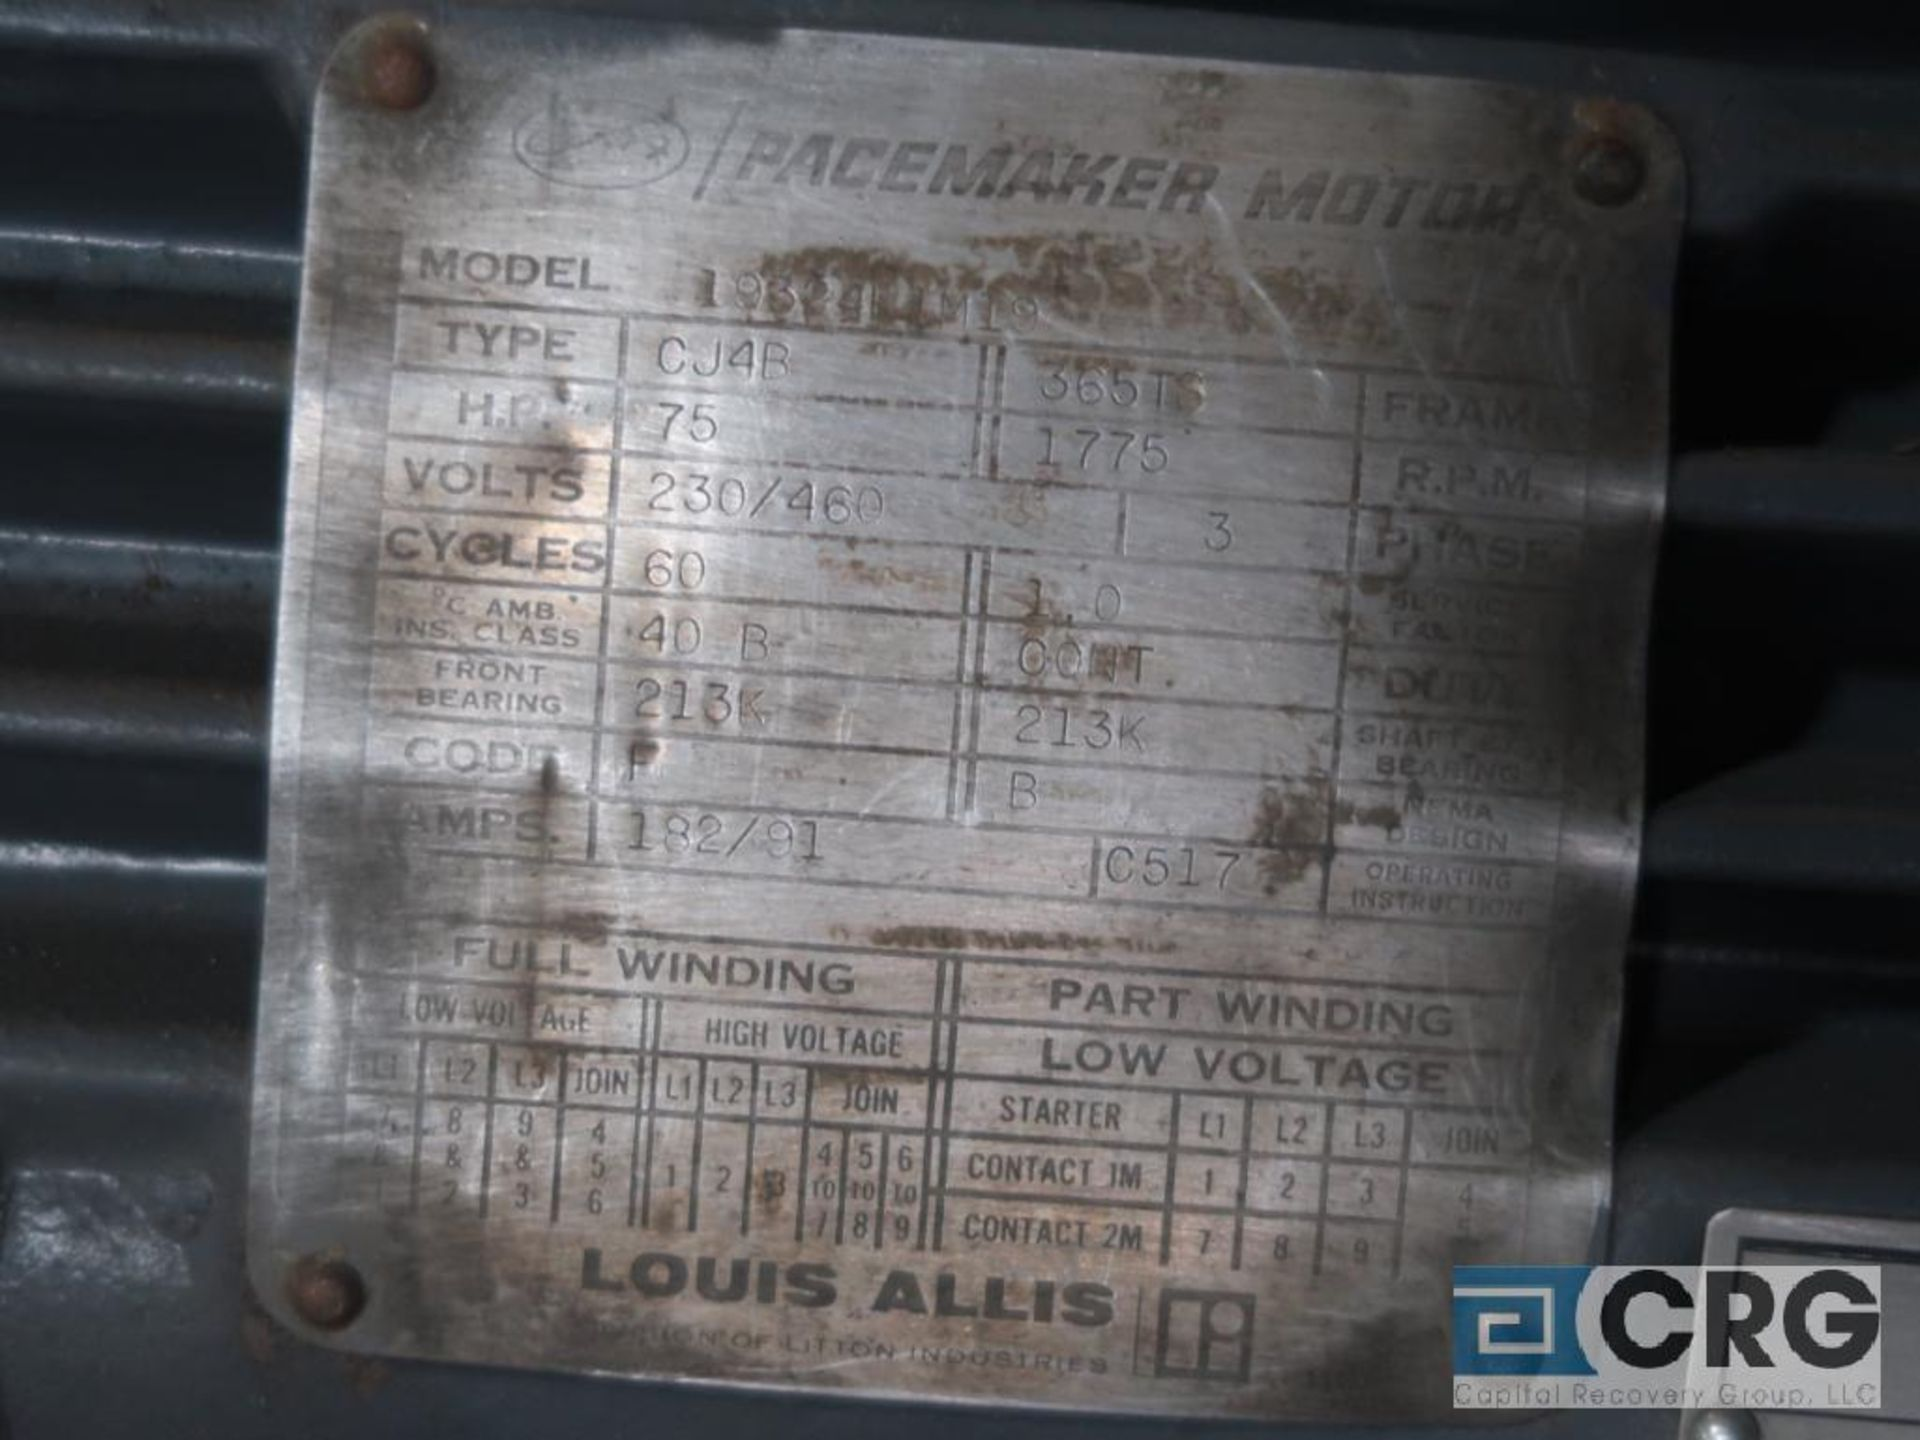 Louis-Allis Pacemaker motor, 75 HP, 1,775 RPMs, 230/460 volt, 3 ph., 365TS frame (Finish Building) - Image 2 of 2